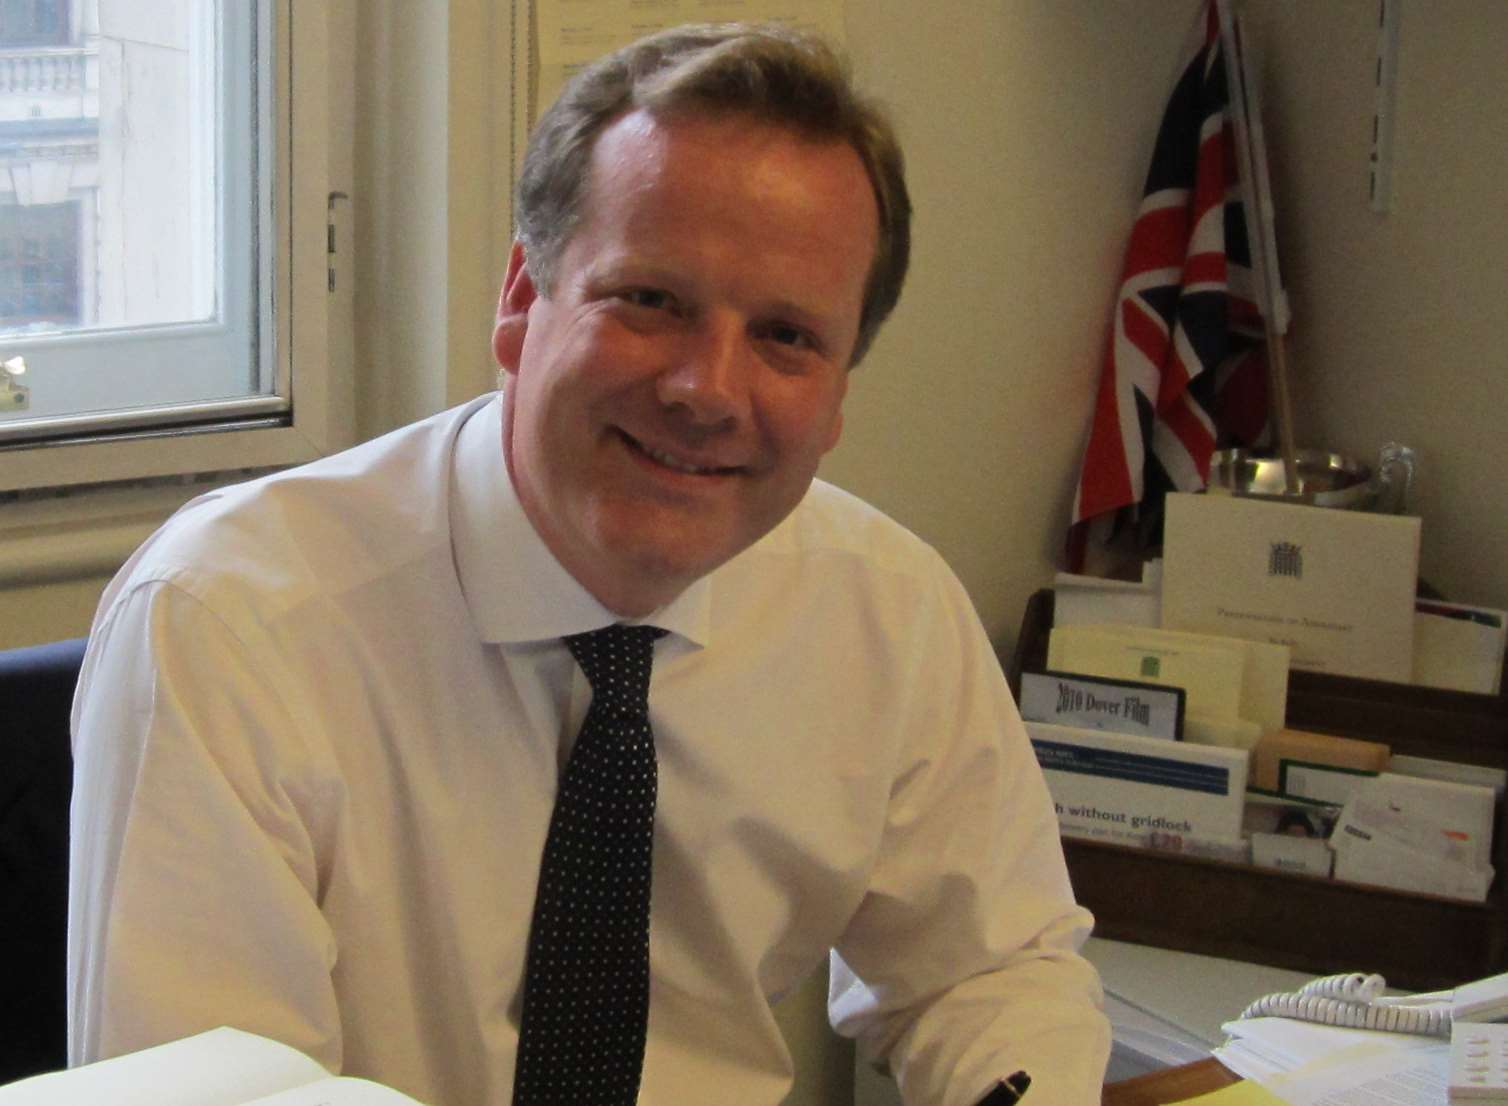 Dover and Deal MP Charlie Elphicke denies any wrongdoing